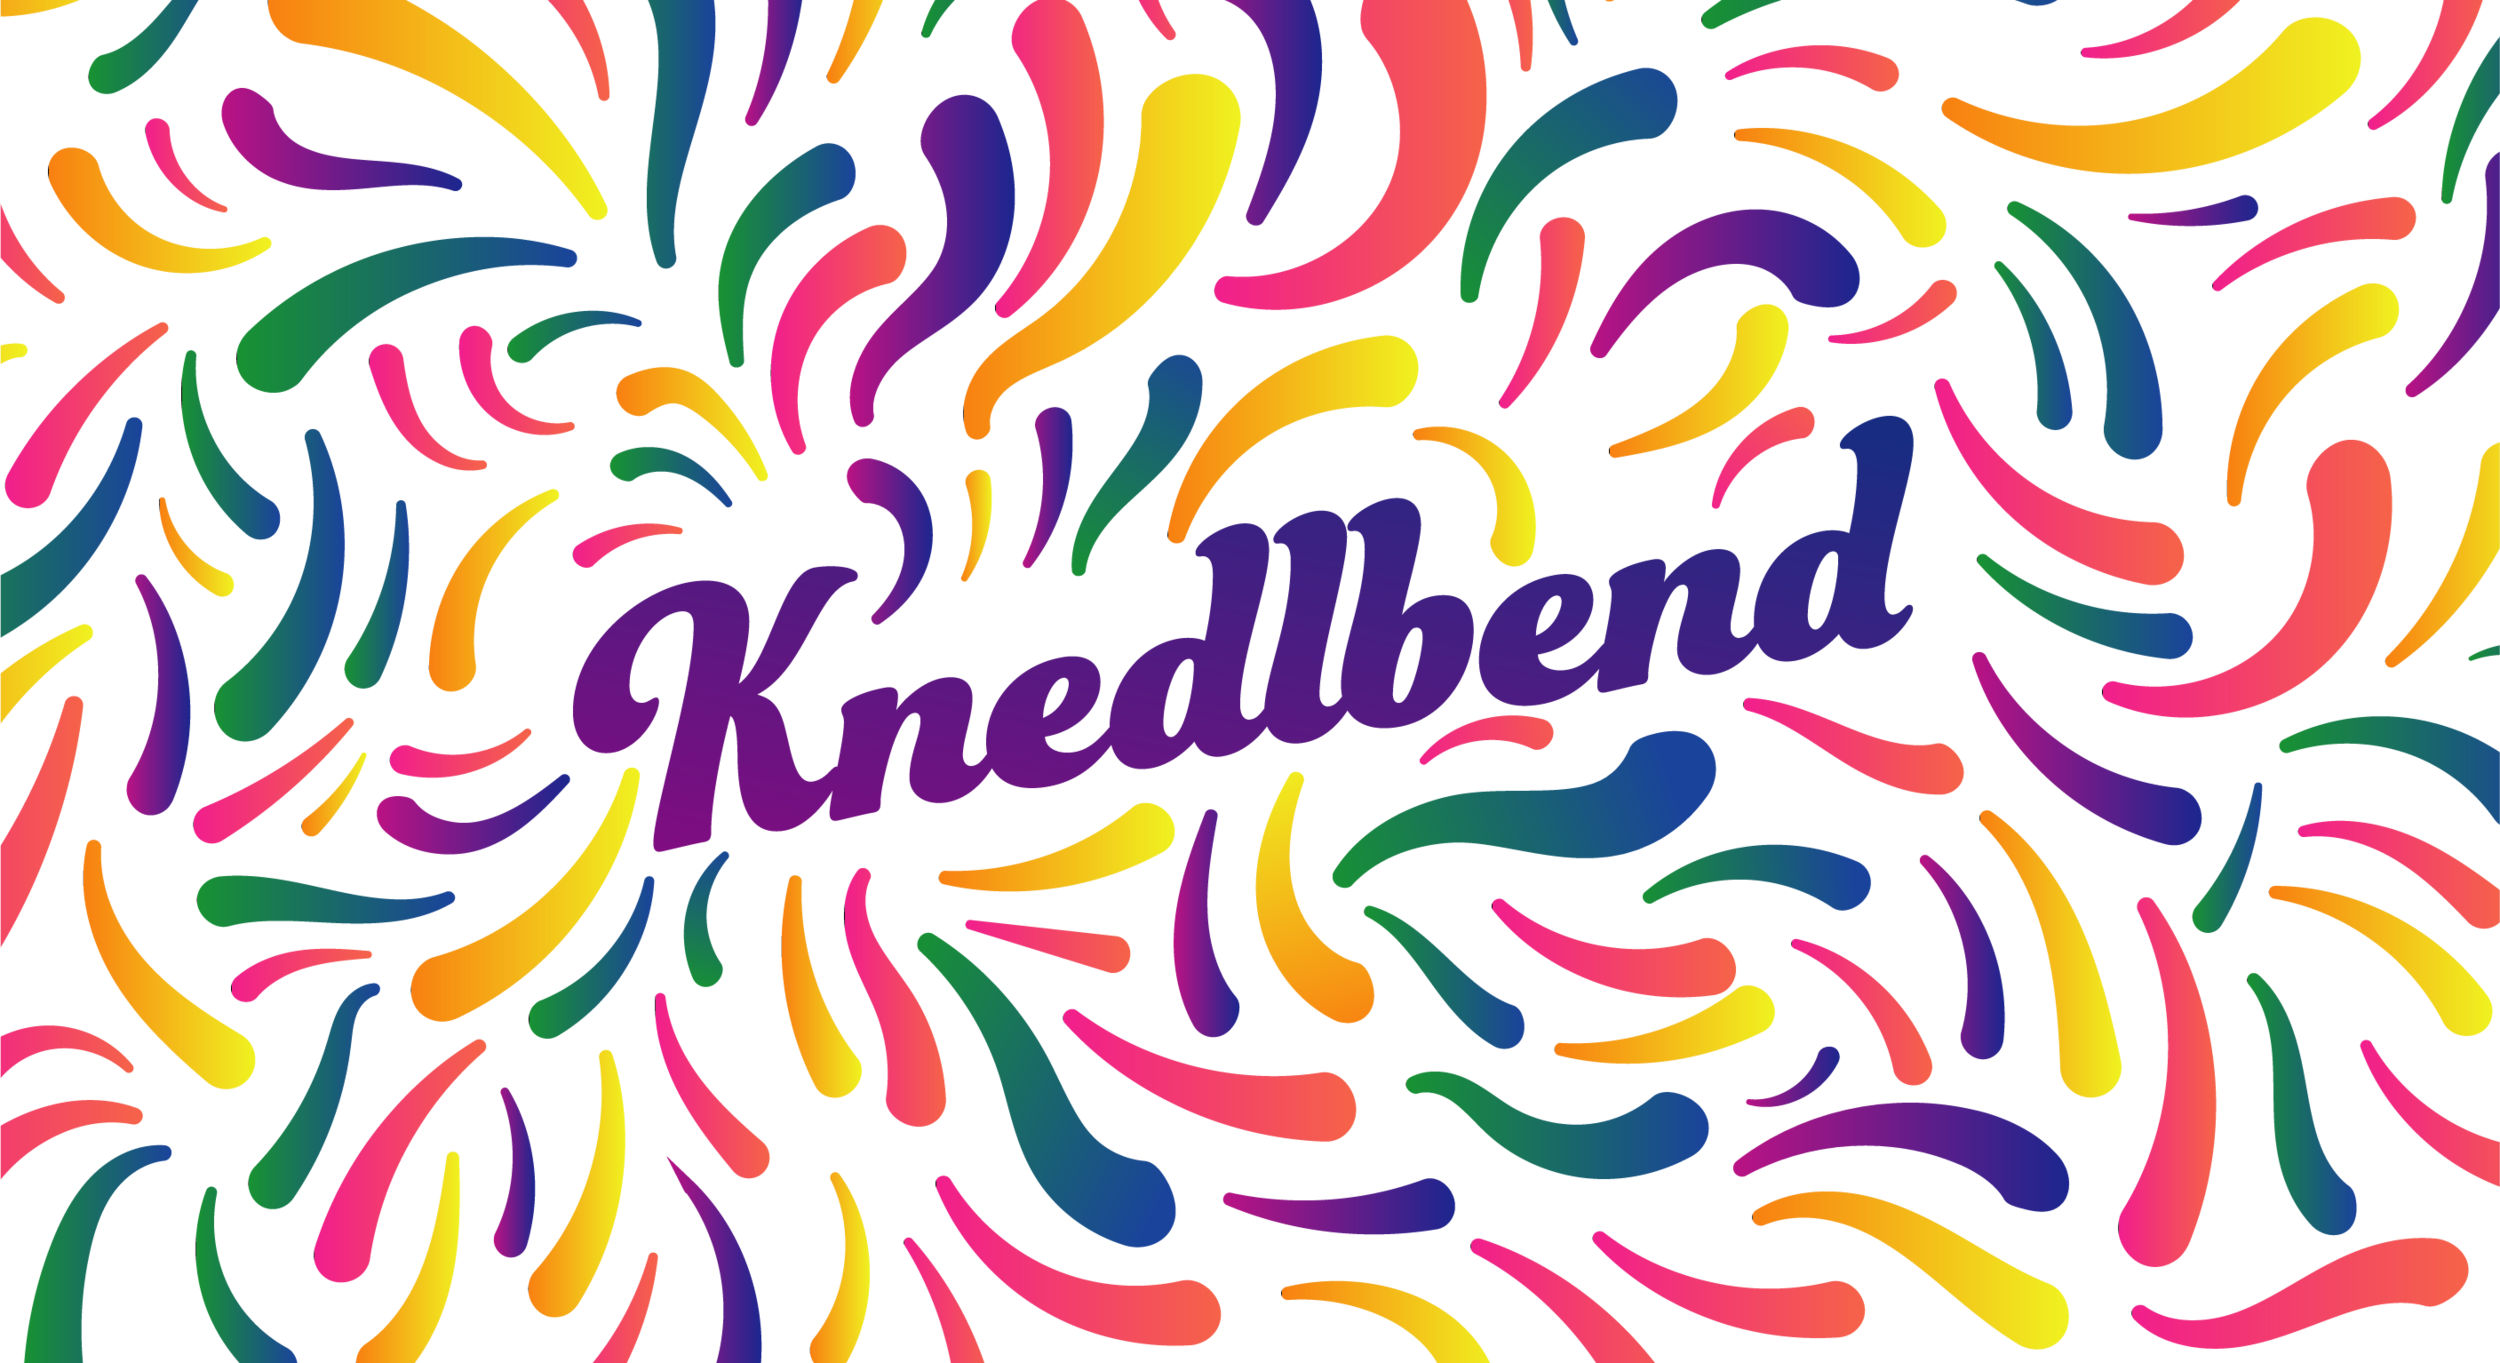 knedlband_logo_artwork@3x.png